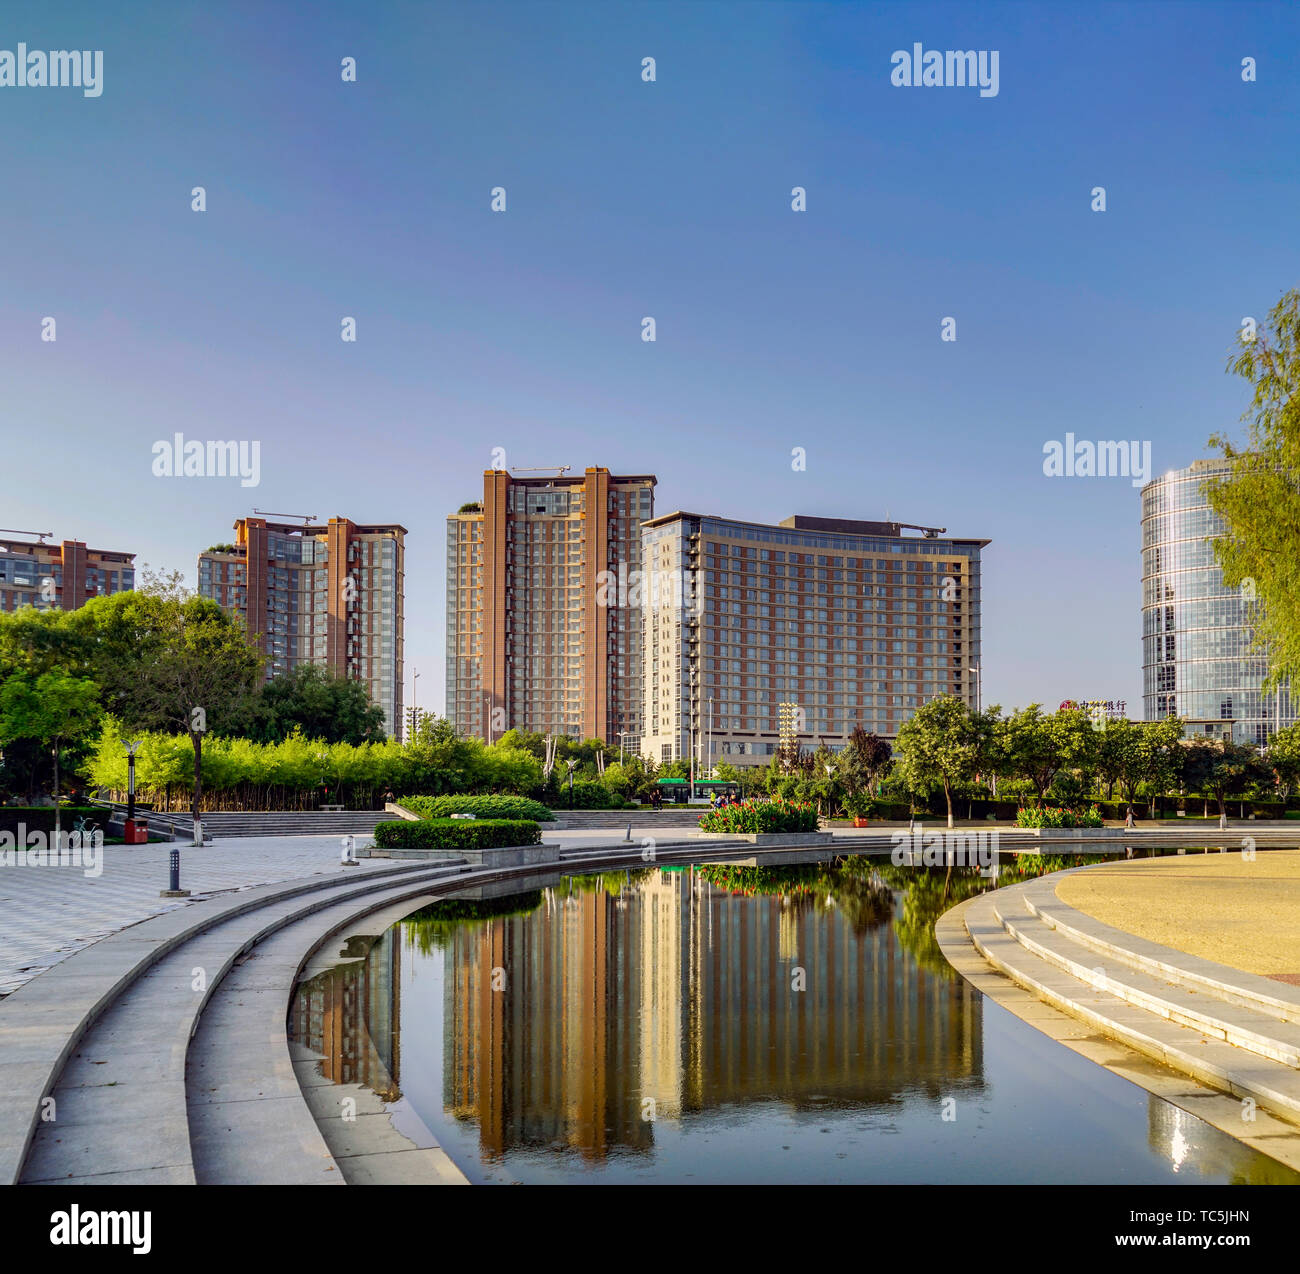 Architectural Scenery of Yinchuan City Stock Photo